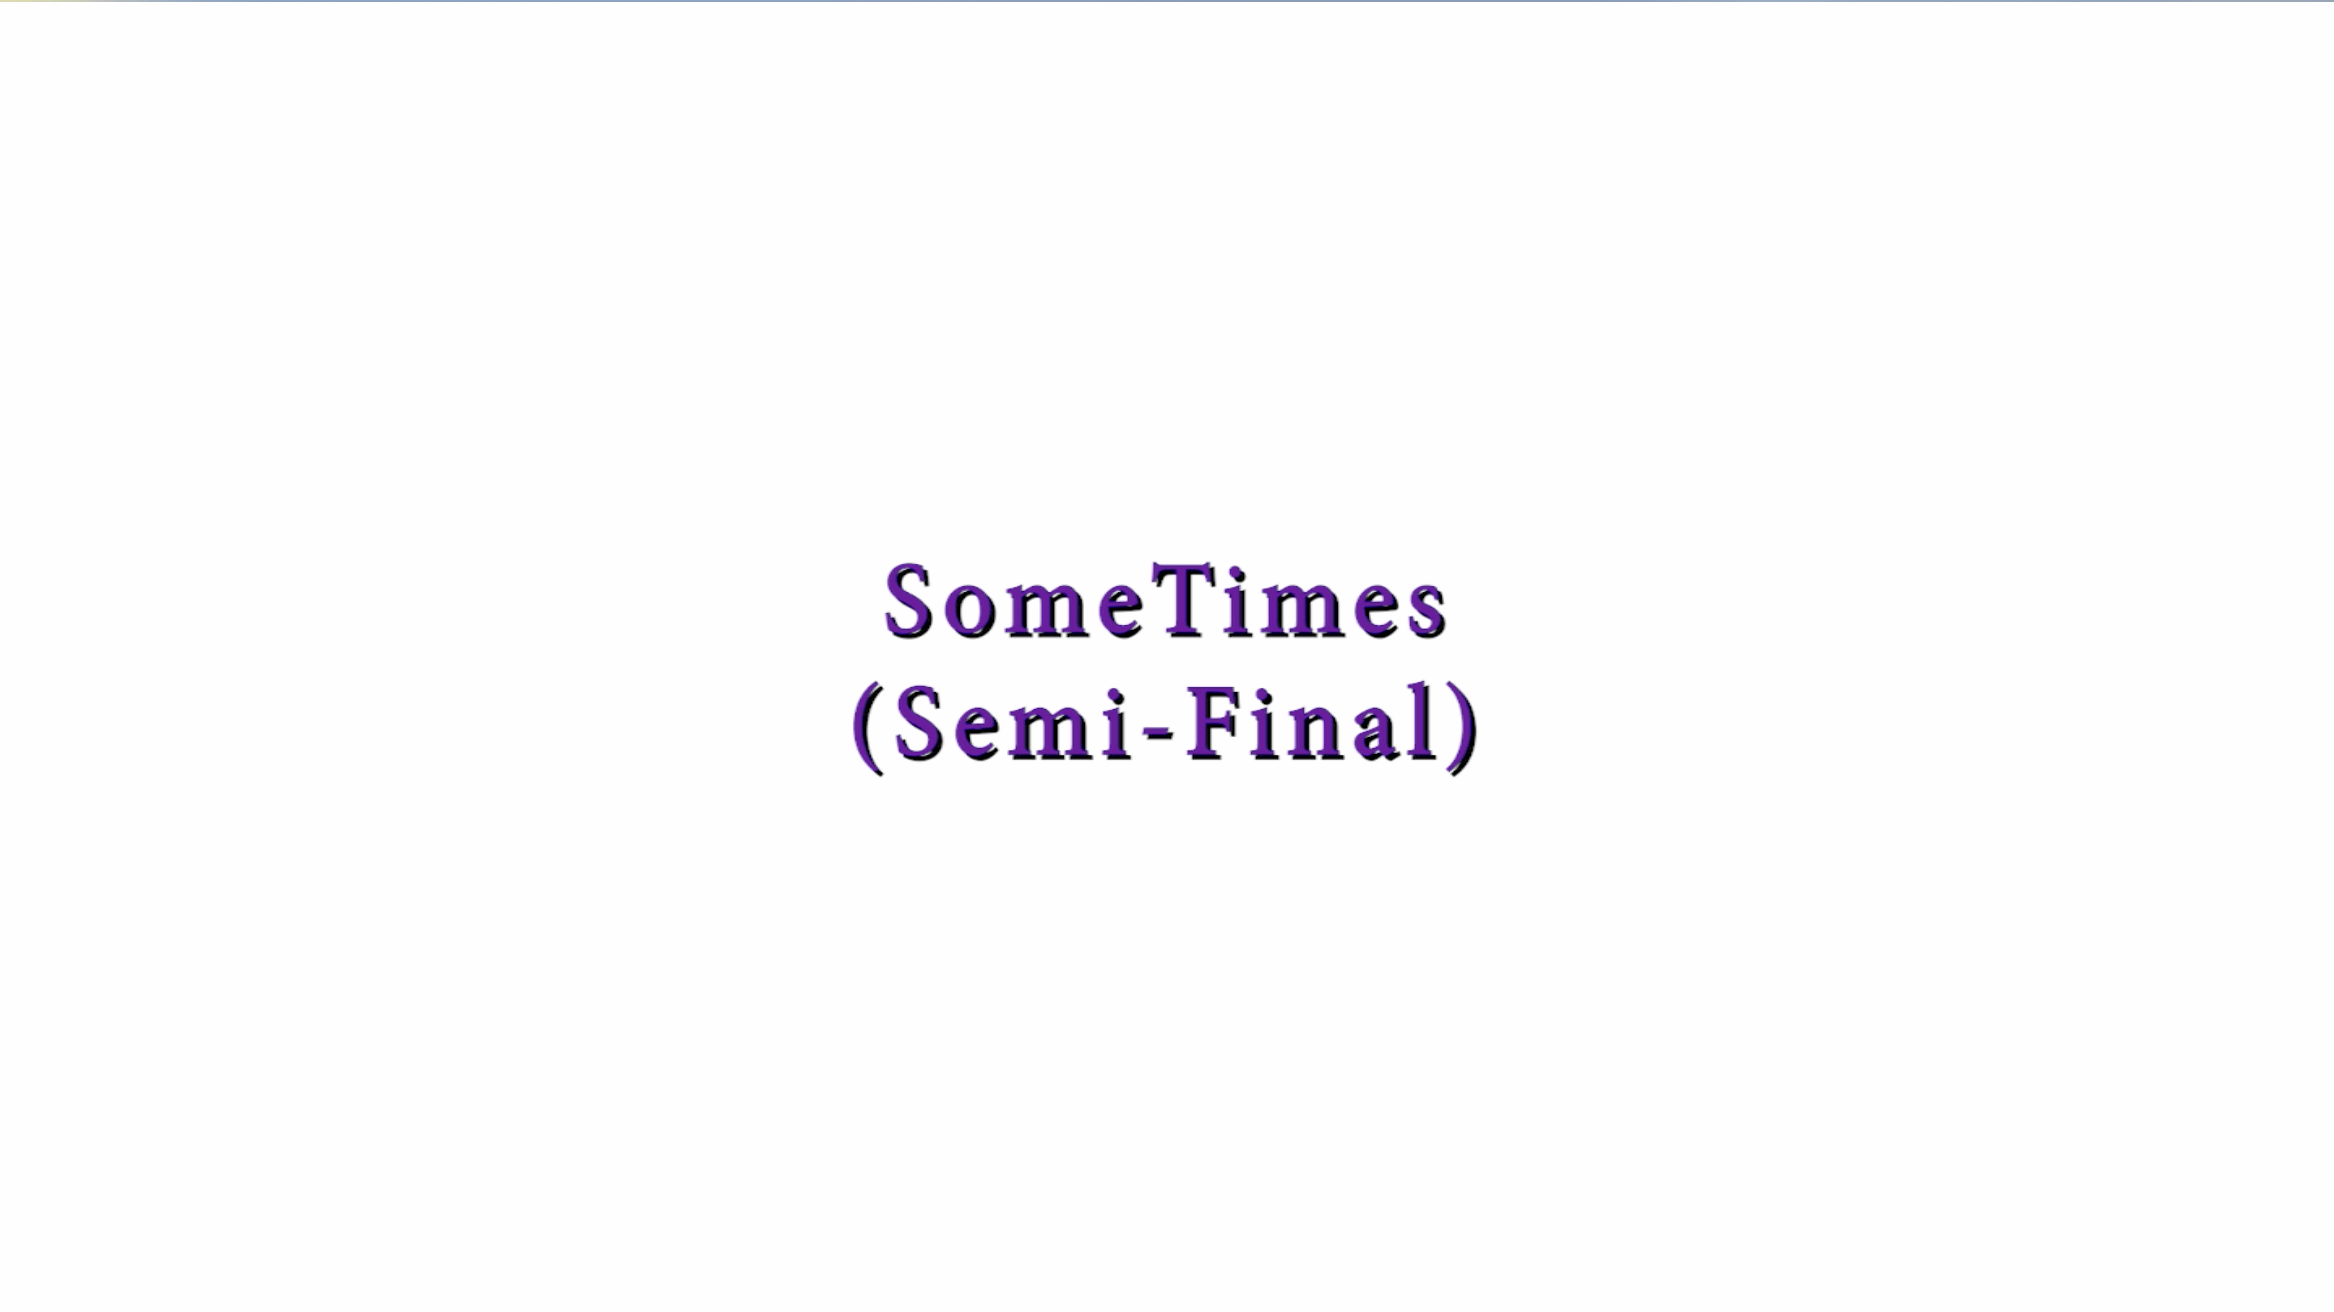 SomeTimes (Semi-Final) Marq Robinson